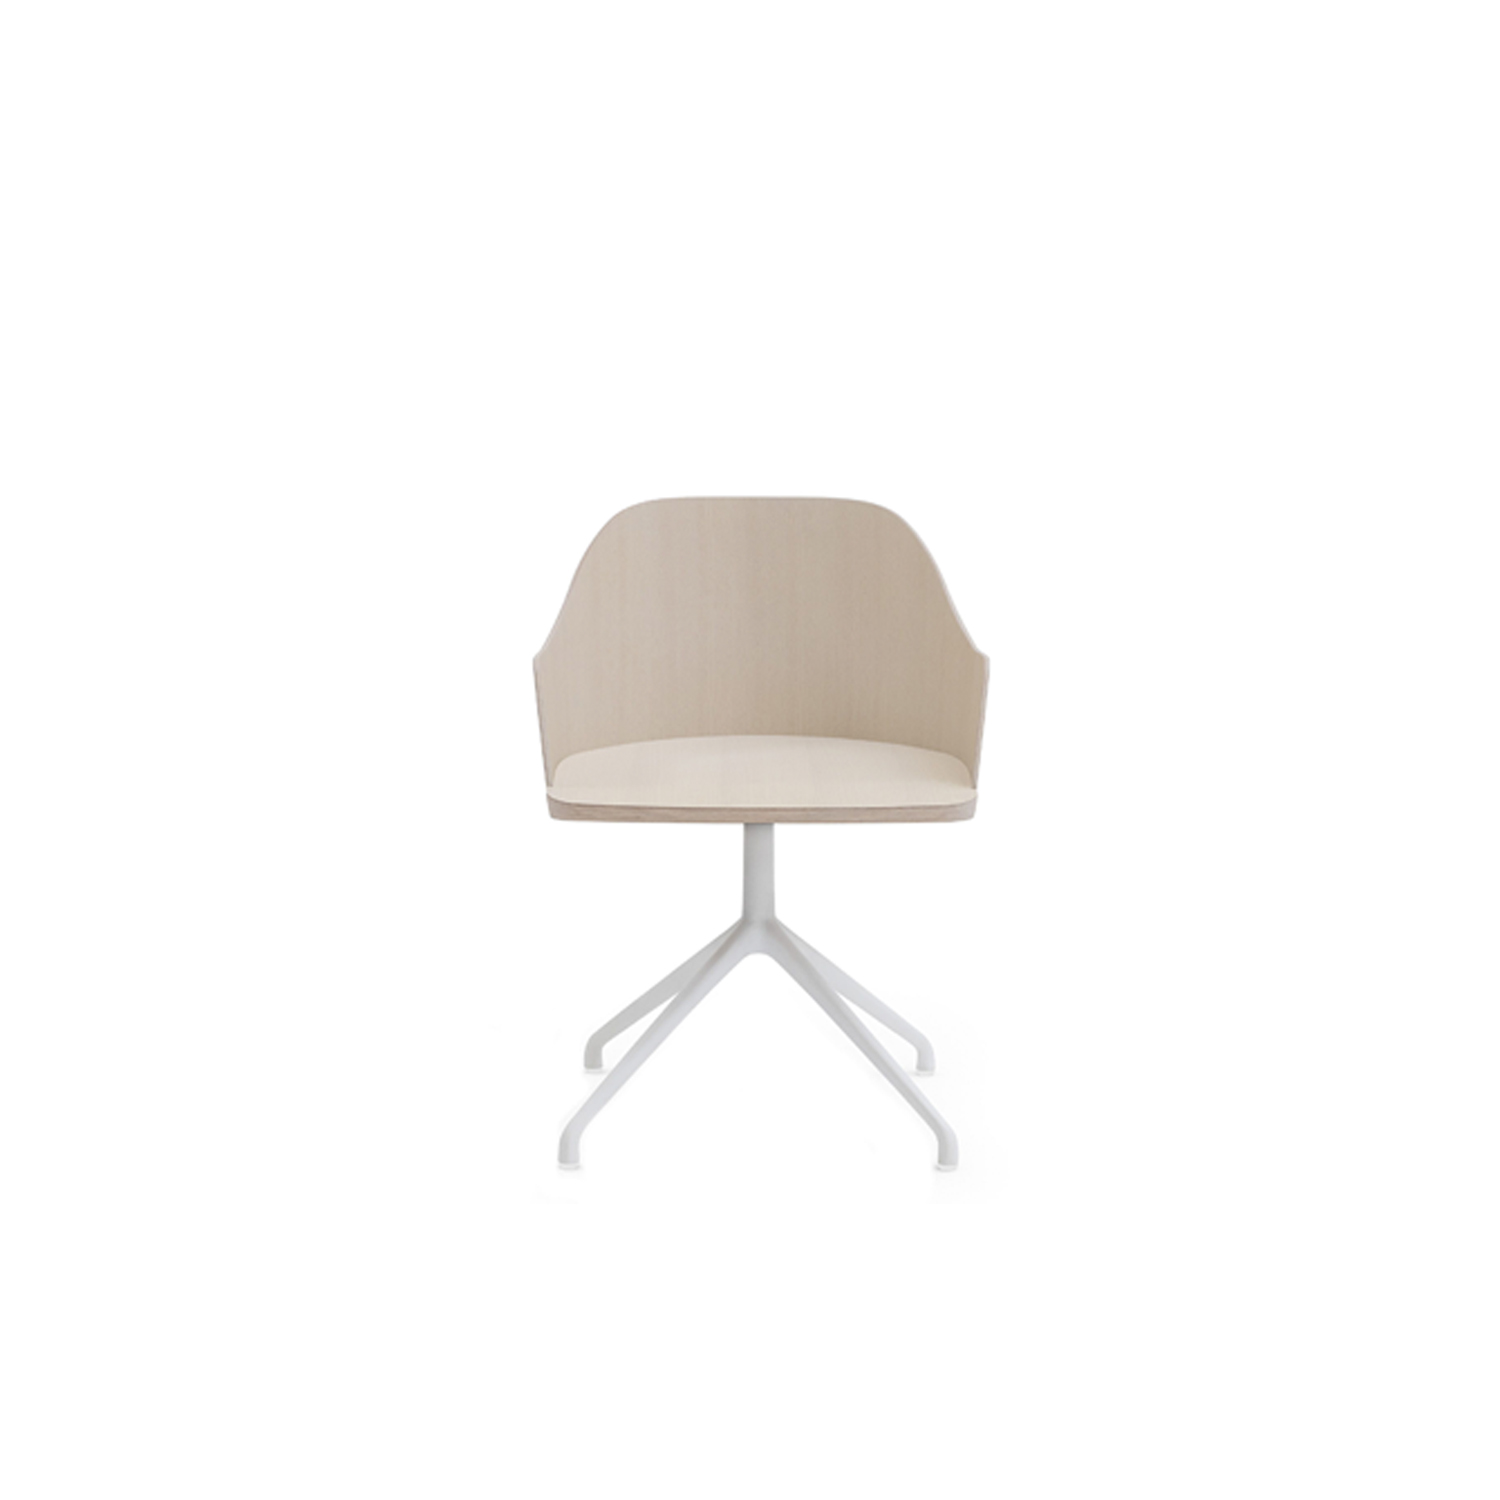 Fitt Swivel Armchair - <p>This is the wooden chair as Billiani intends it, direct and timeless. The Valencian designer's intention is for versatility of use and multiple applications, with a striking level of comfort and intriguing proportions. The Fitt Classic collection starts with the light and refined ash chair with plywood shell. Alongside this, are armchair versions with a choice of lacquered metal frames: on four legs, sled, and swivel base. All models are available with wooden or upholstered seat.</p>  | Matter of Stuff